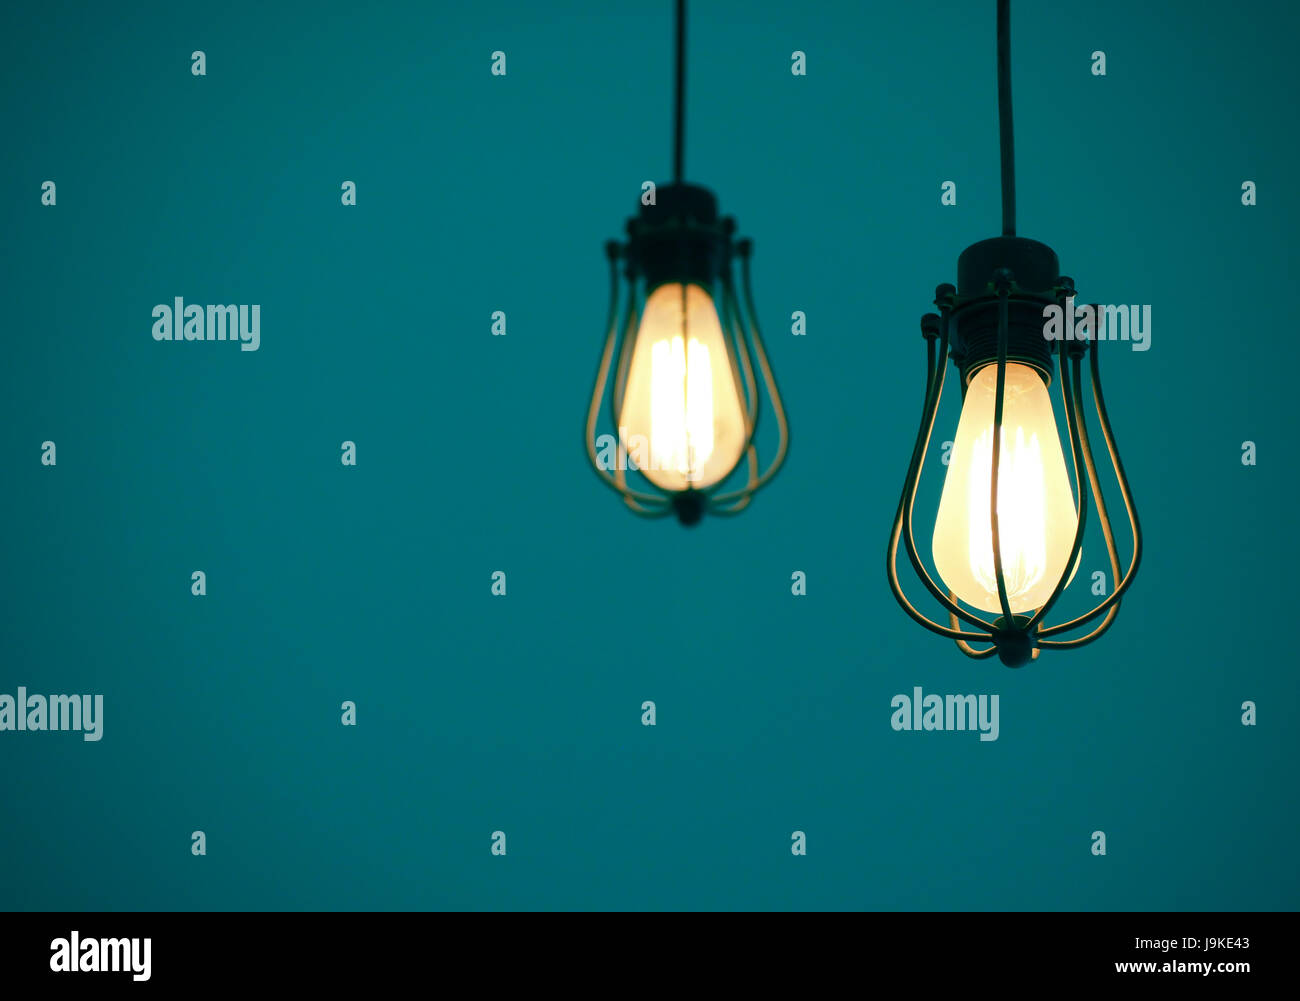 illuminated hanging light bulbs